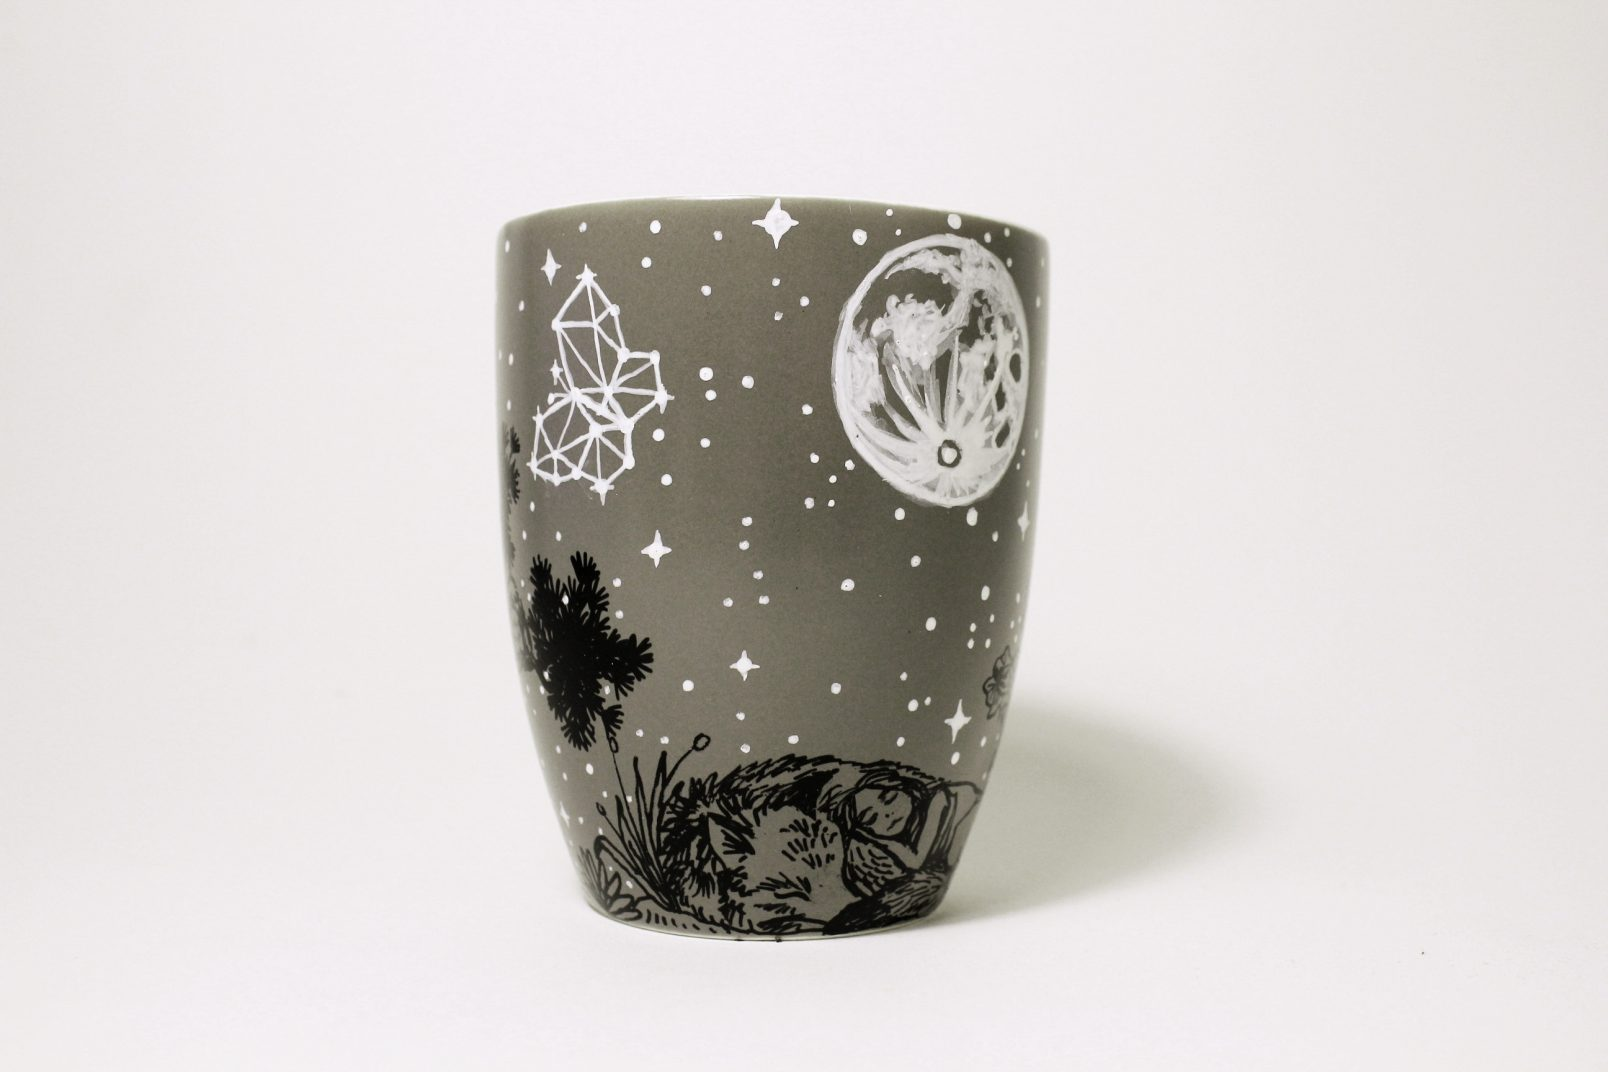 sleeping girl and wolf stars moon forest meadow etsy store online shopping hand painted illustration mug coffee tea cup